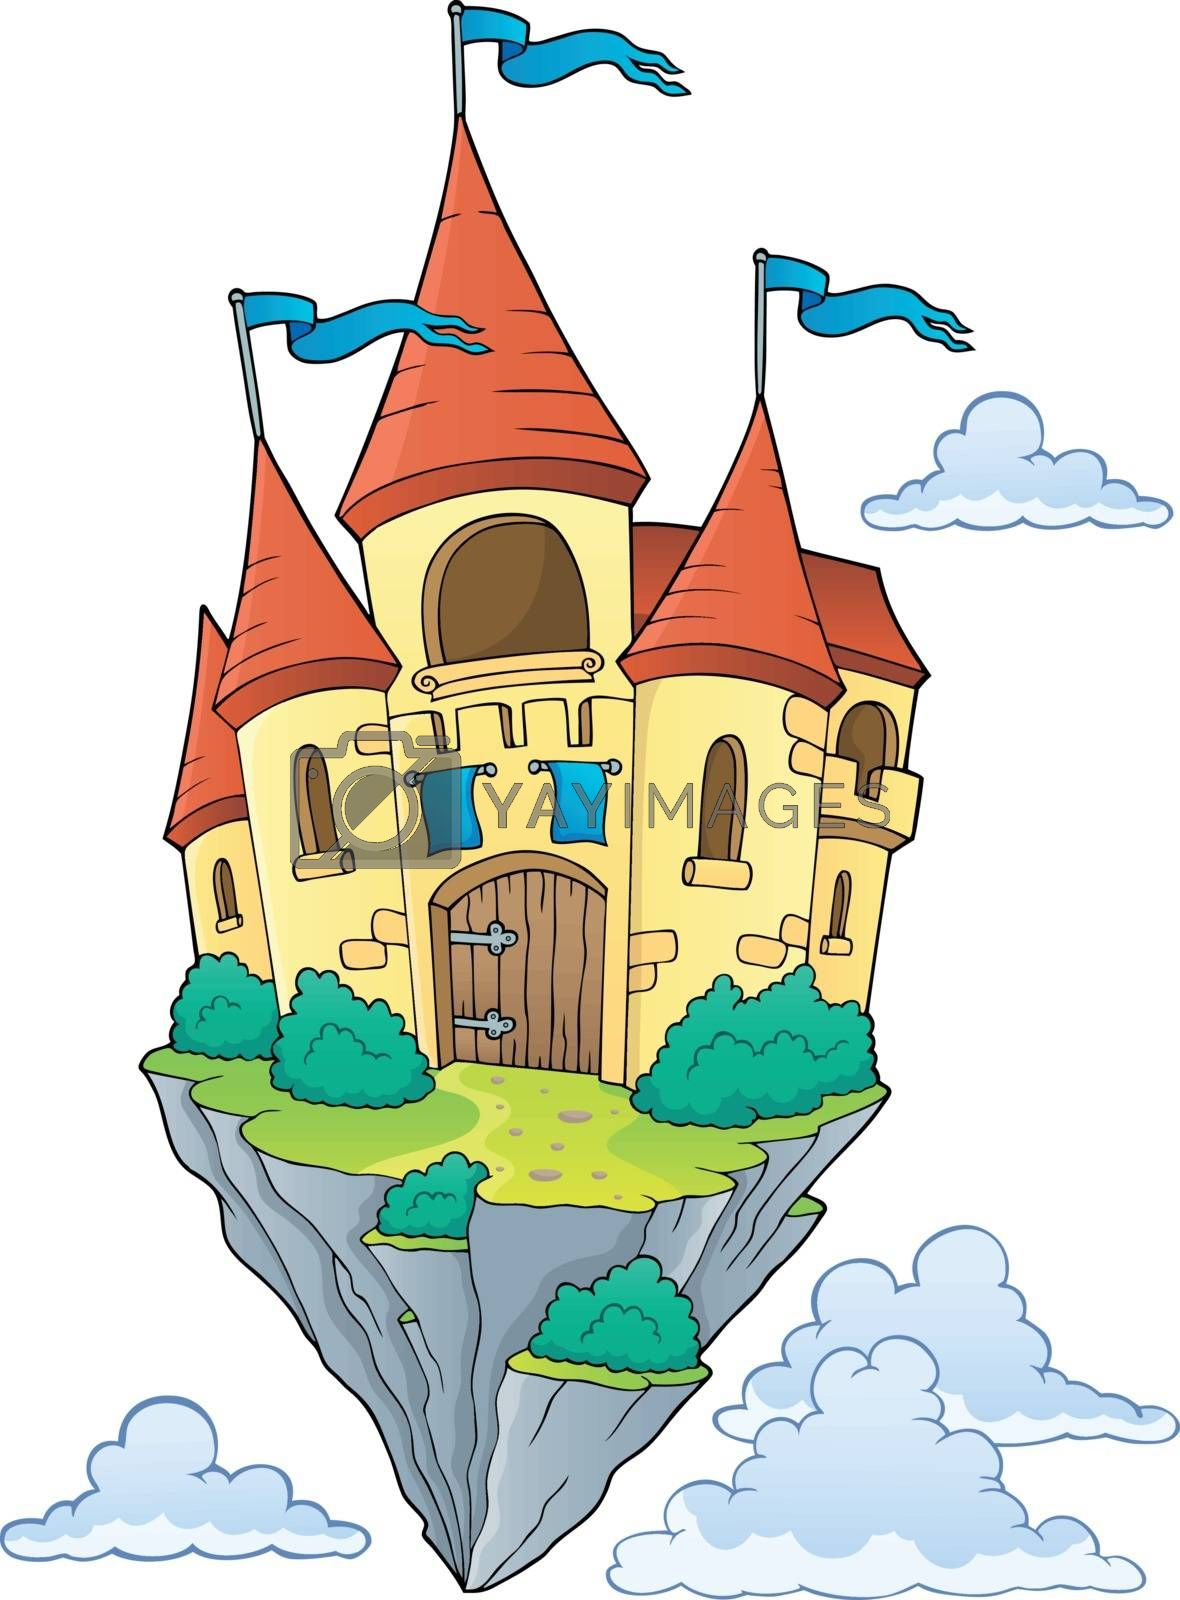 Flying castle theme image 1 - eps10 vector illustration.